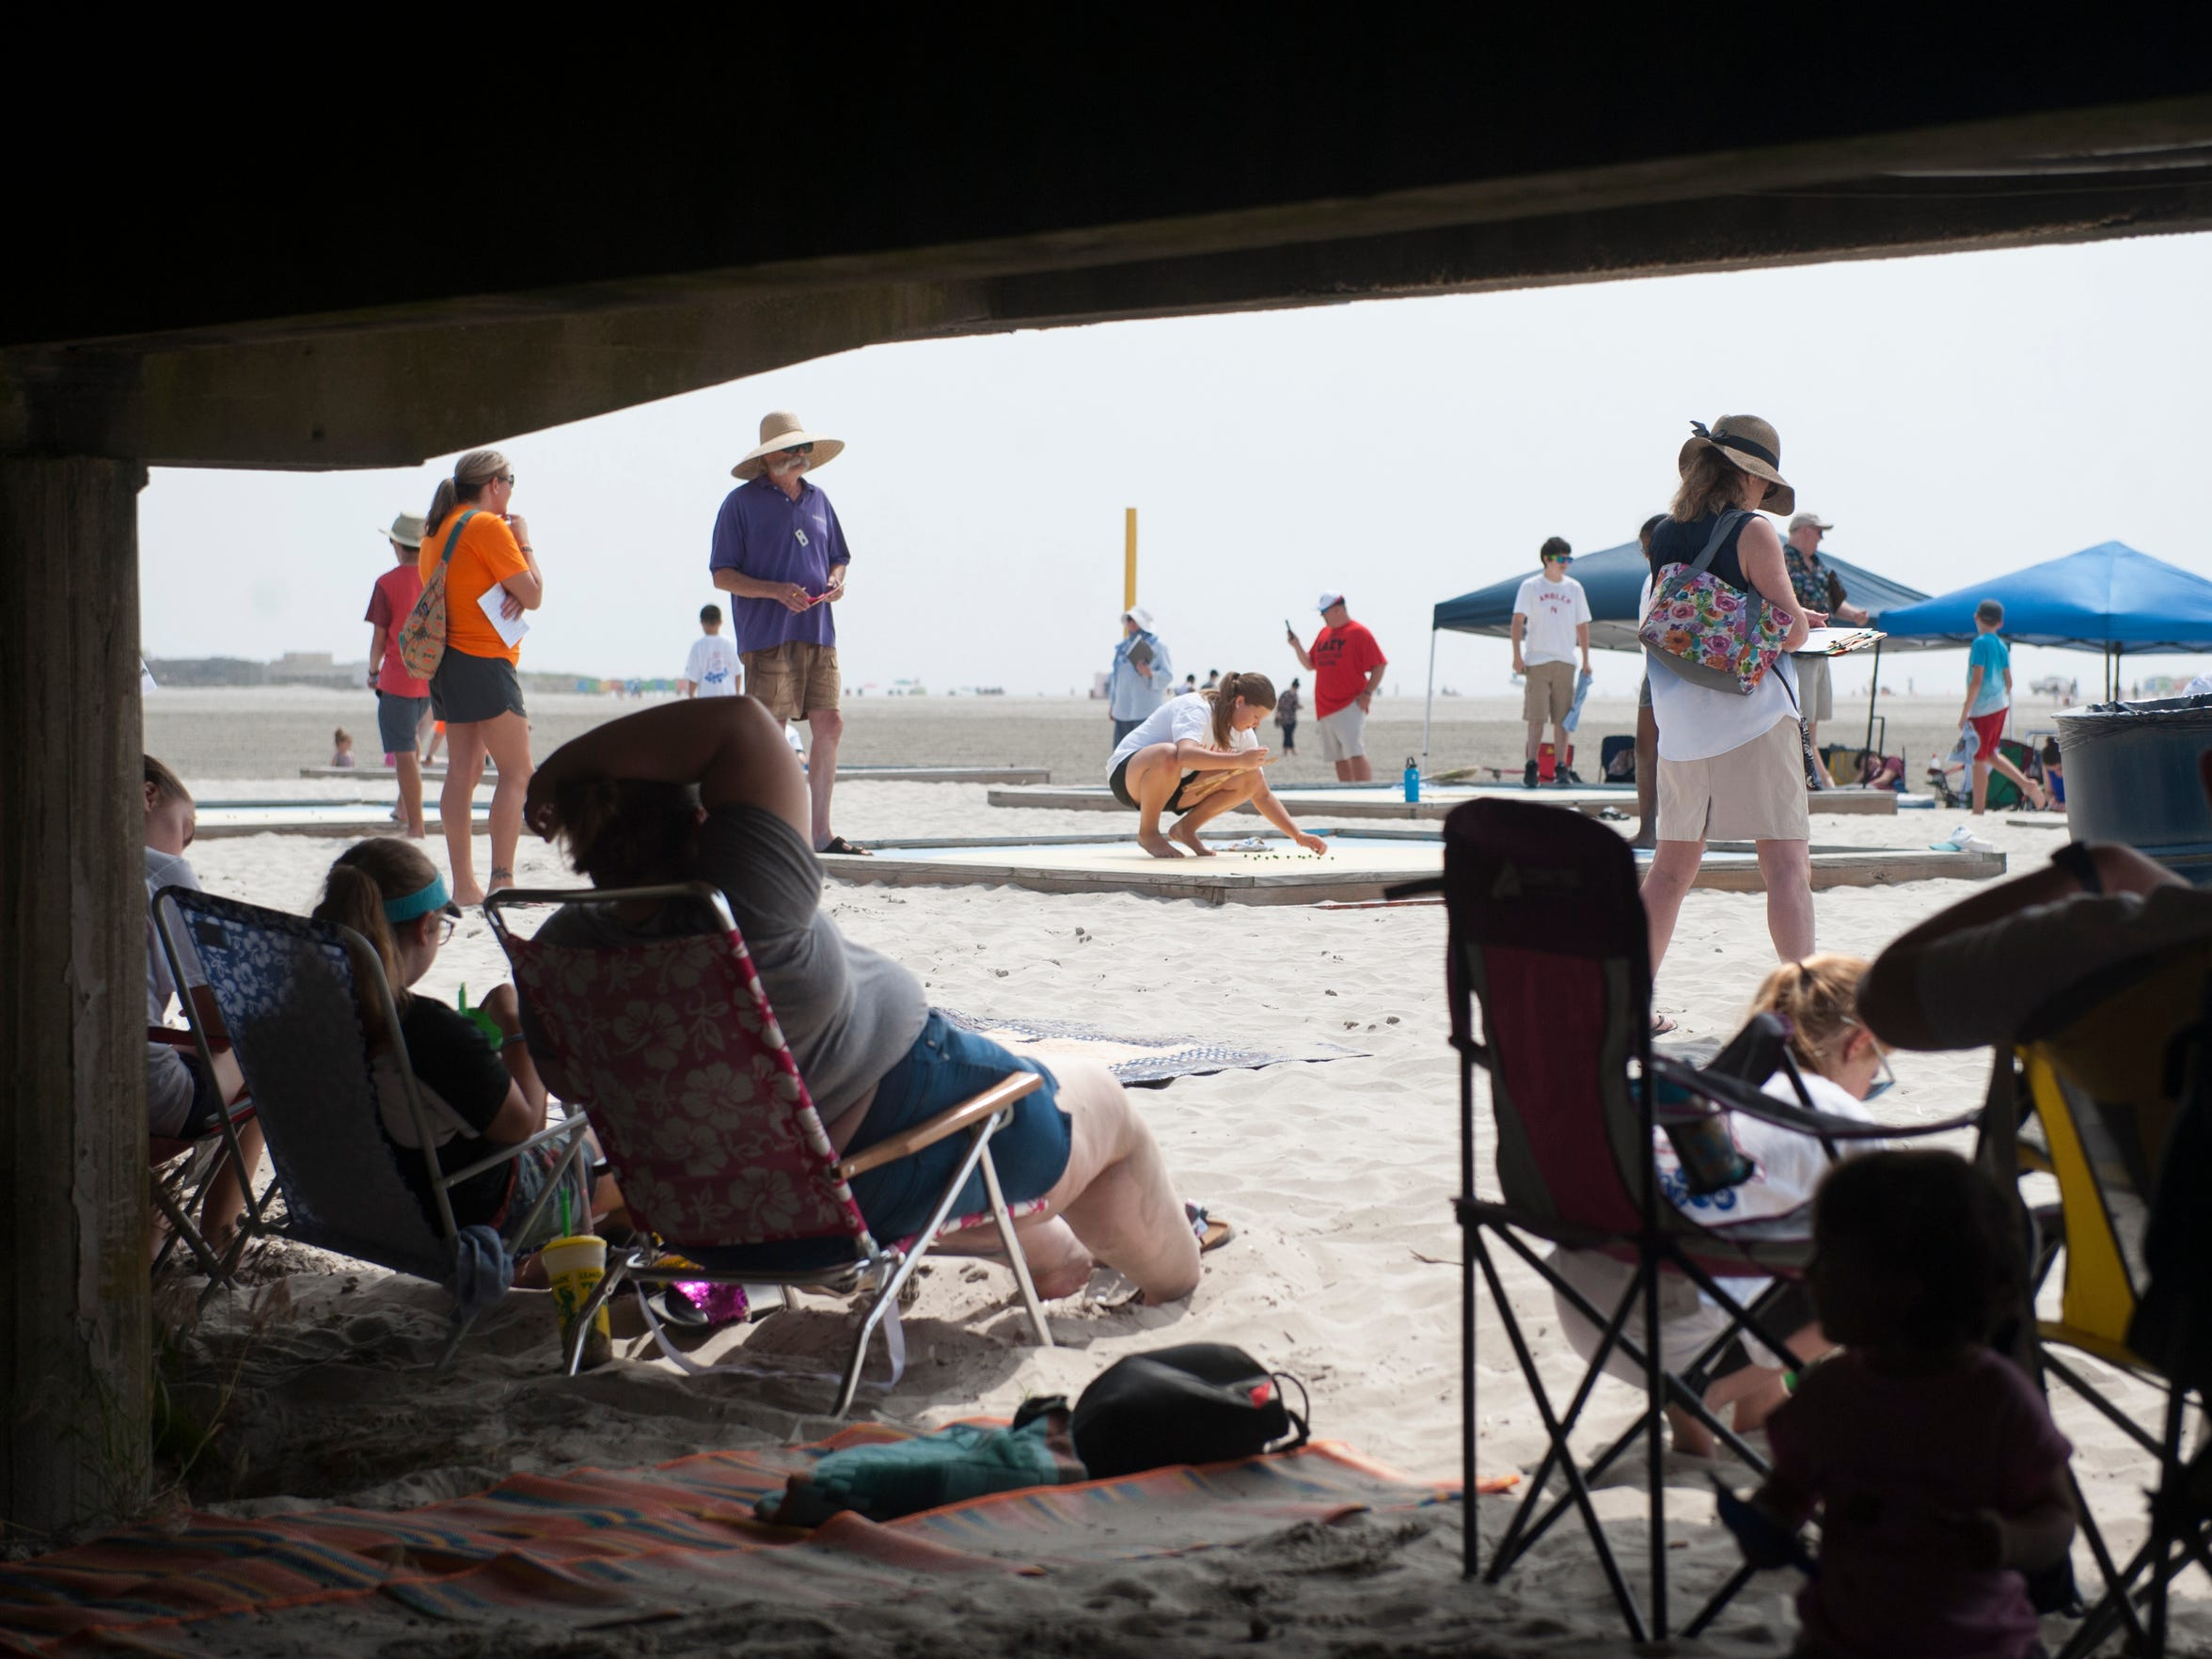 Spectators sit under the boardwalk to take refuge from the sun and heat as they watch the National Marbles Tournament in Wildwood on Monday, June 18, 2018.